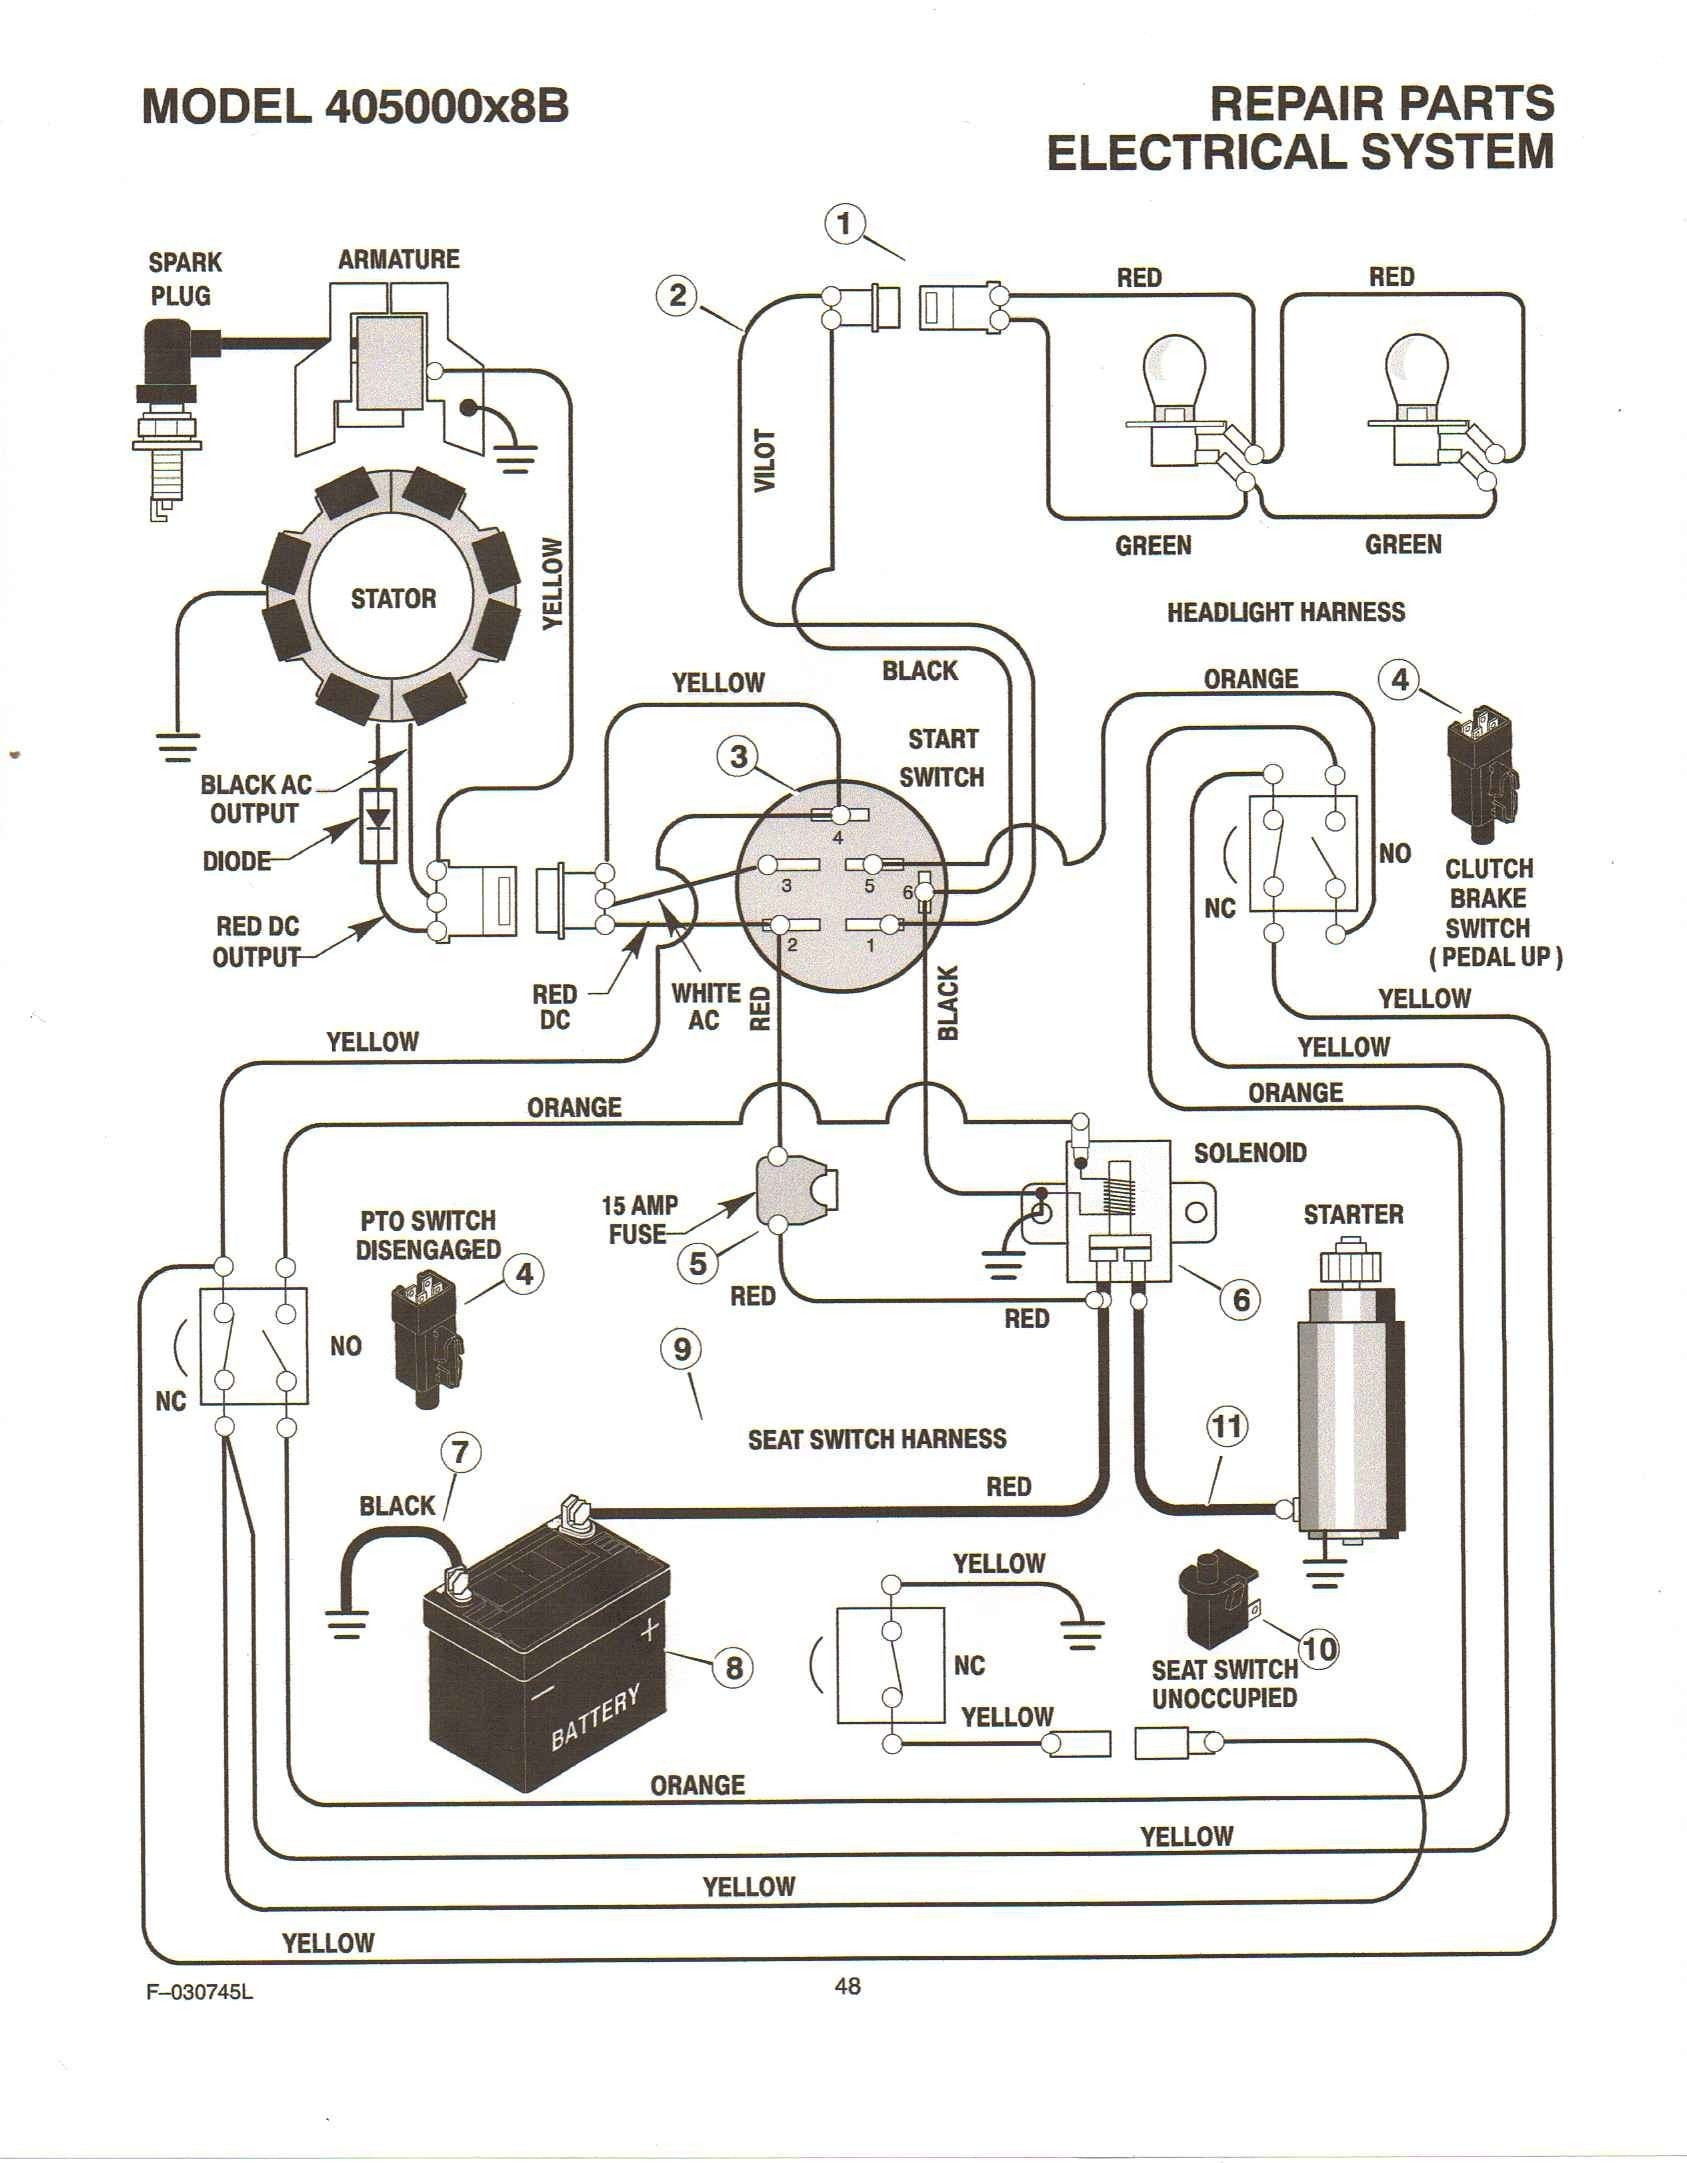 Kohler Engine Wiring Diagram Kohler Ignition Switch Wiring Diagram Best Wiring Diagram for Kohler